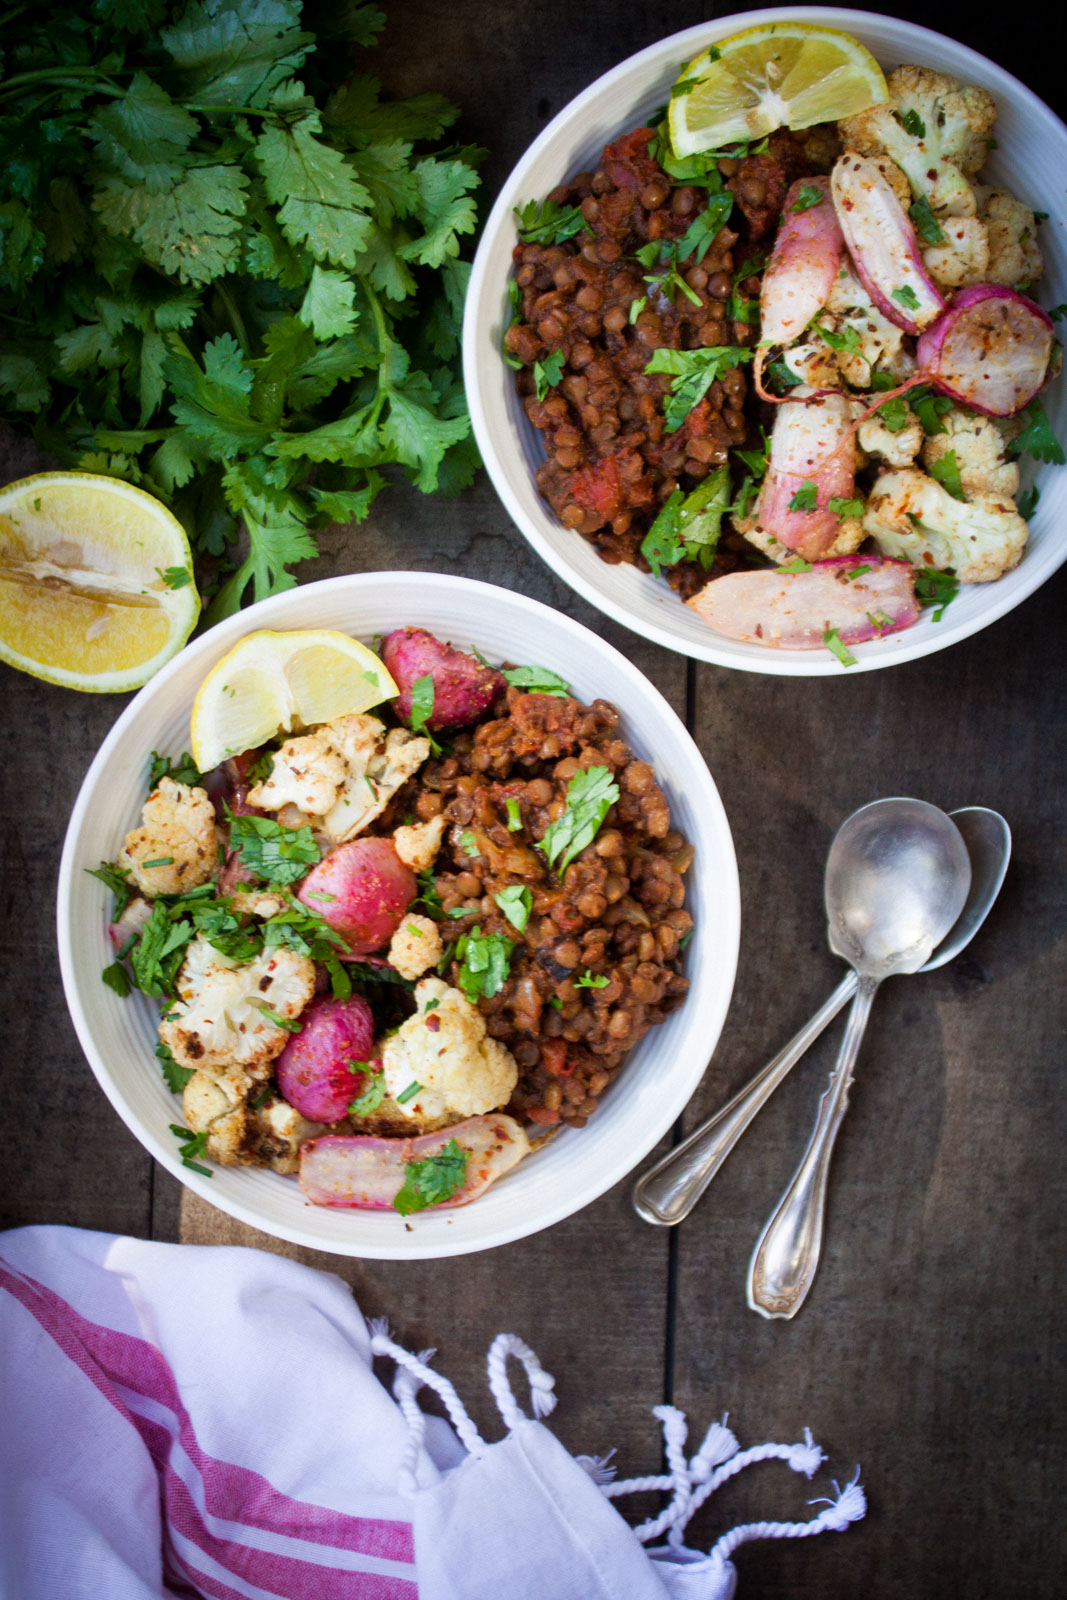 Richa's Masala Lentils w/ Roasted Cauliflower + Radishes